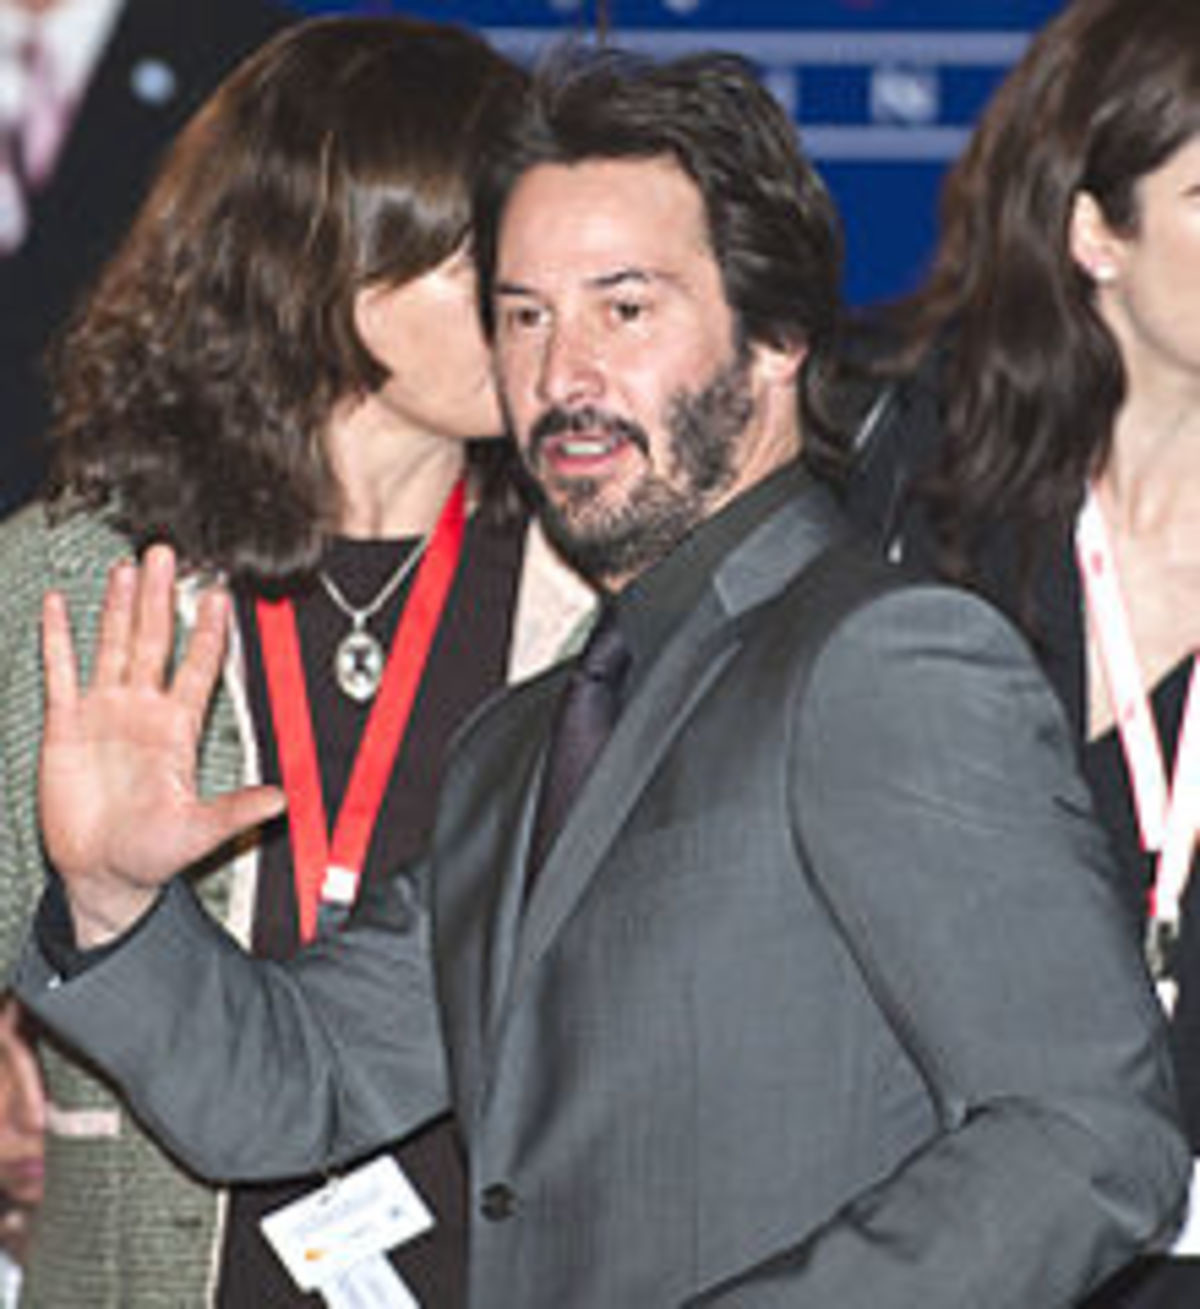 TIL Keanu Reeves. TIL Keanu Reeves was sued for assault by a paparazzo who slipped while taking Reeves picture. It took 18 months for the case to go to trial an